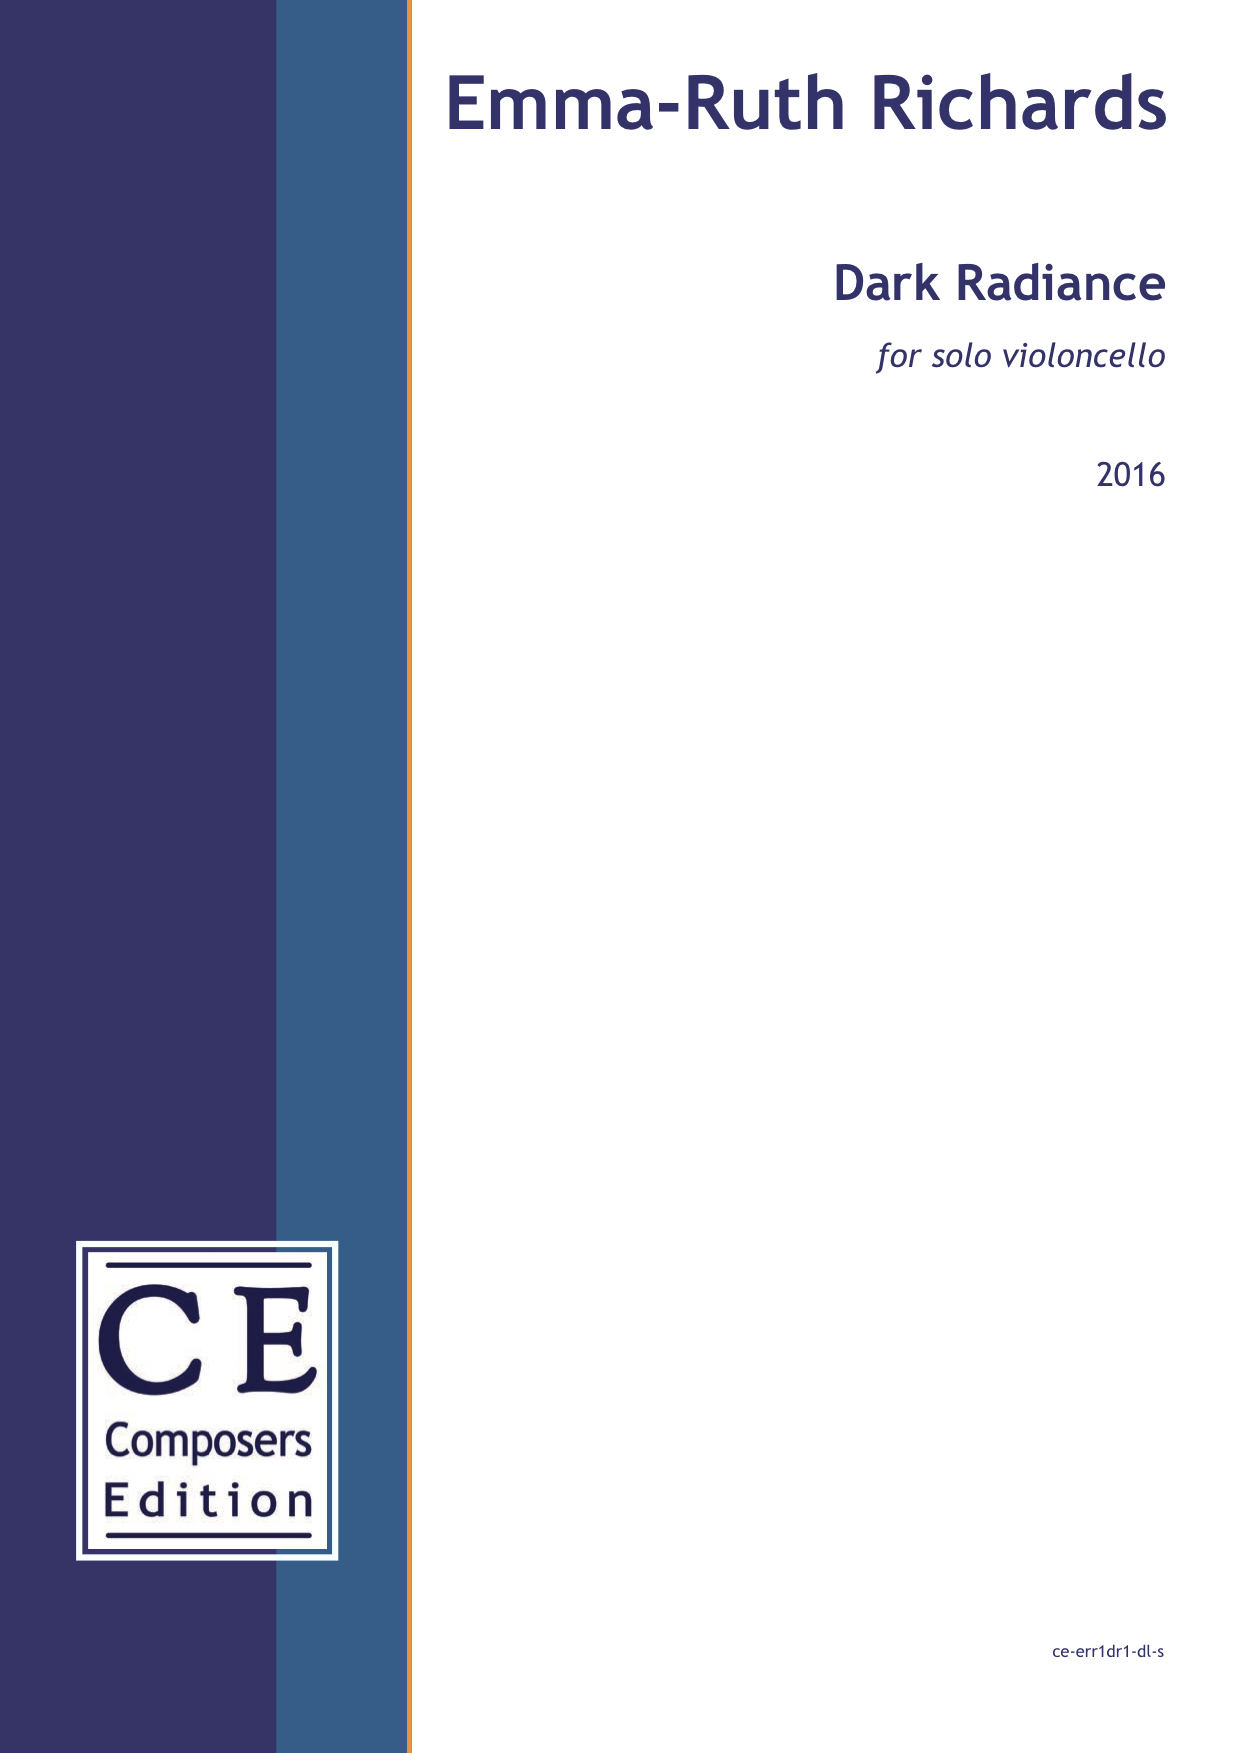 Emma-Ruth Richards: Dark Radiance for solo violoncello